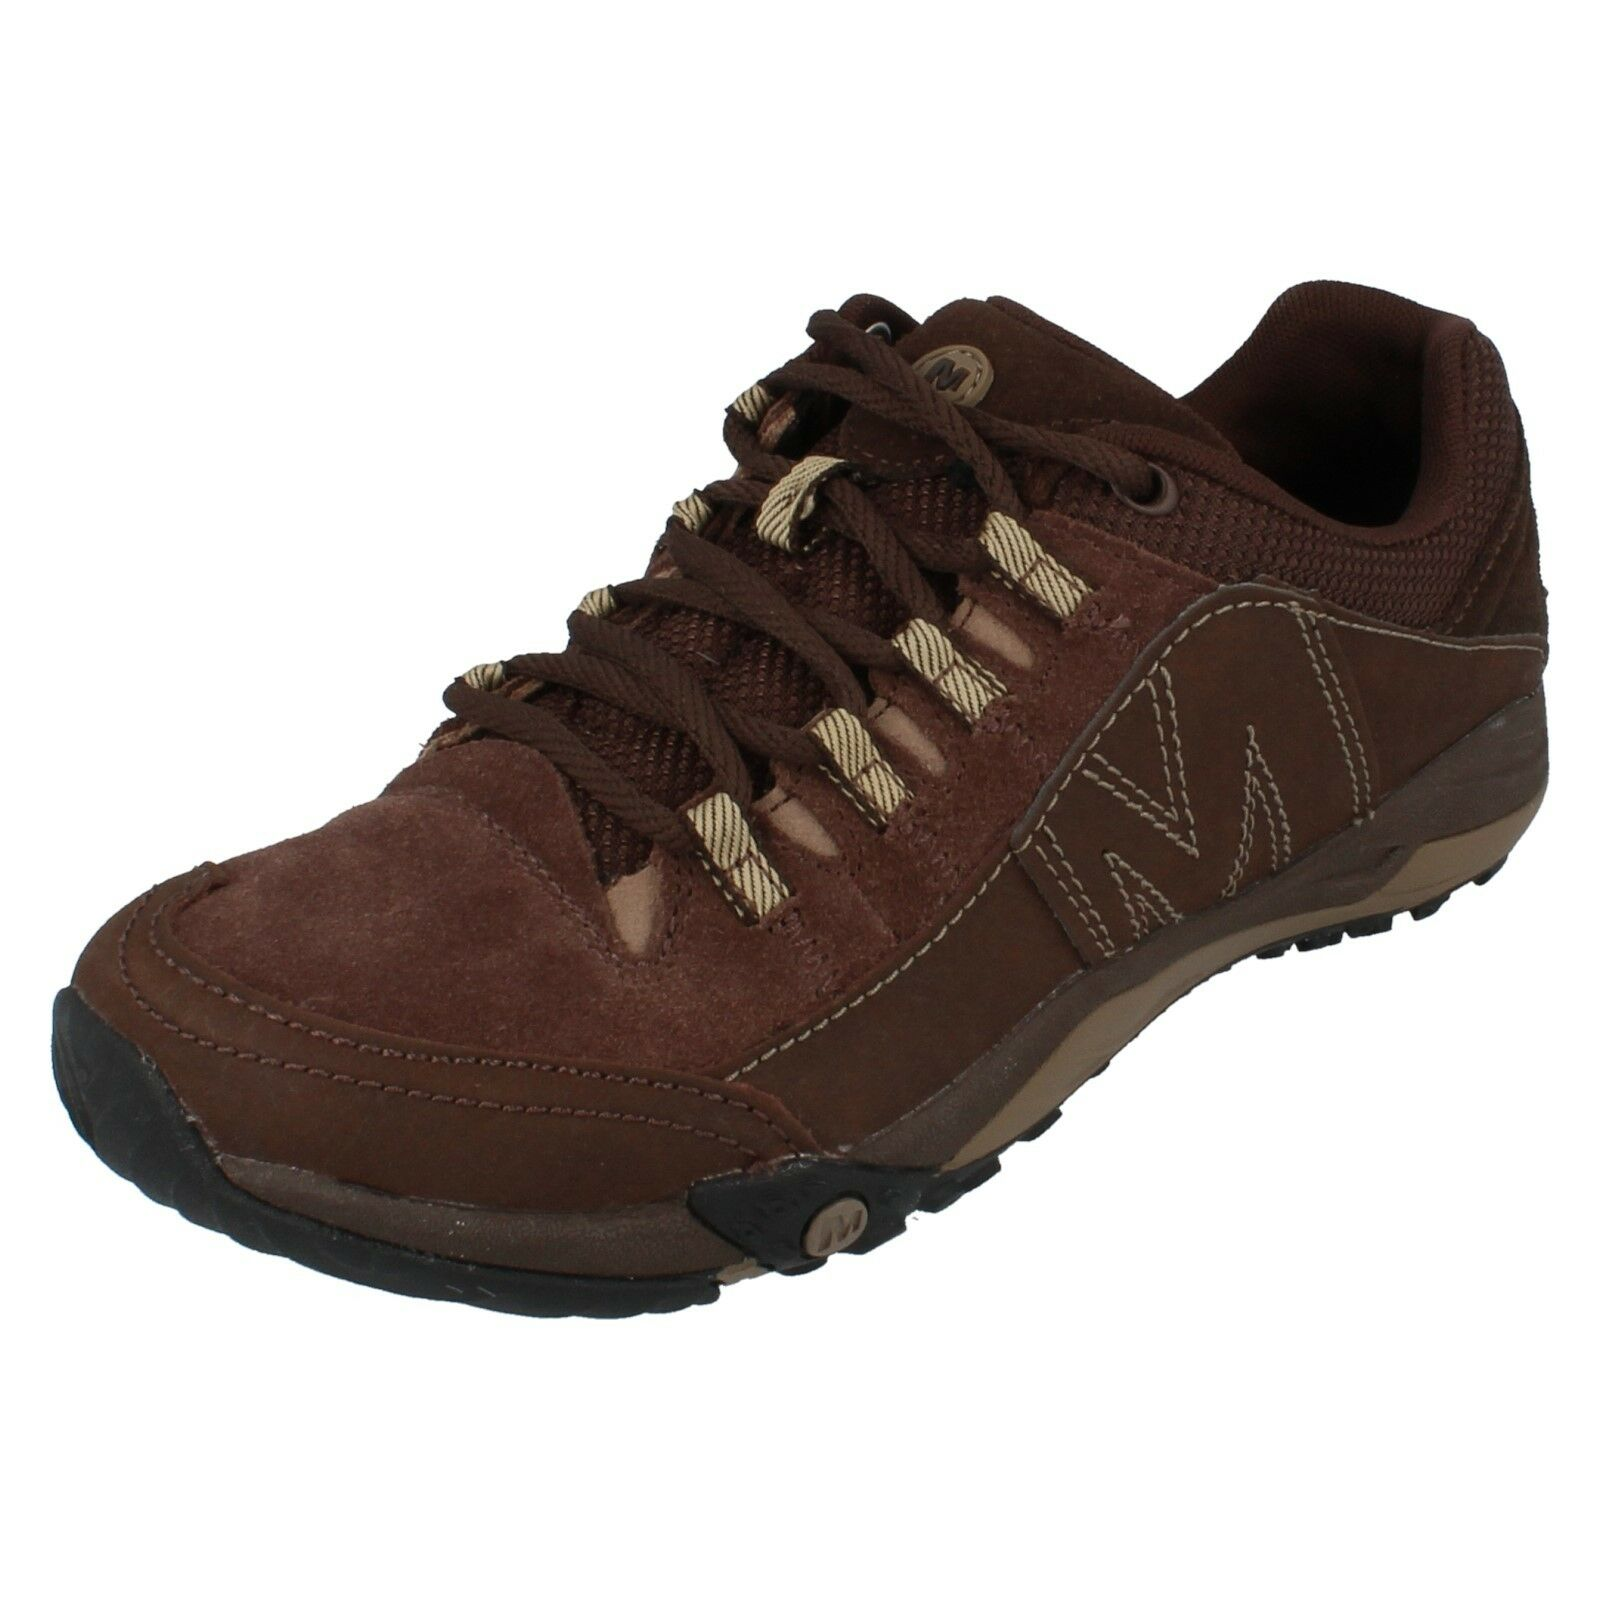 Mens HELIXER EVO/J23495 - Clay/Brown Trainers By Merrell - Retail Price: £75.00